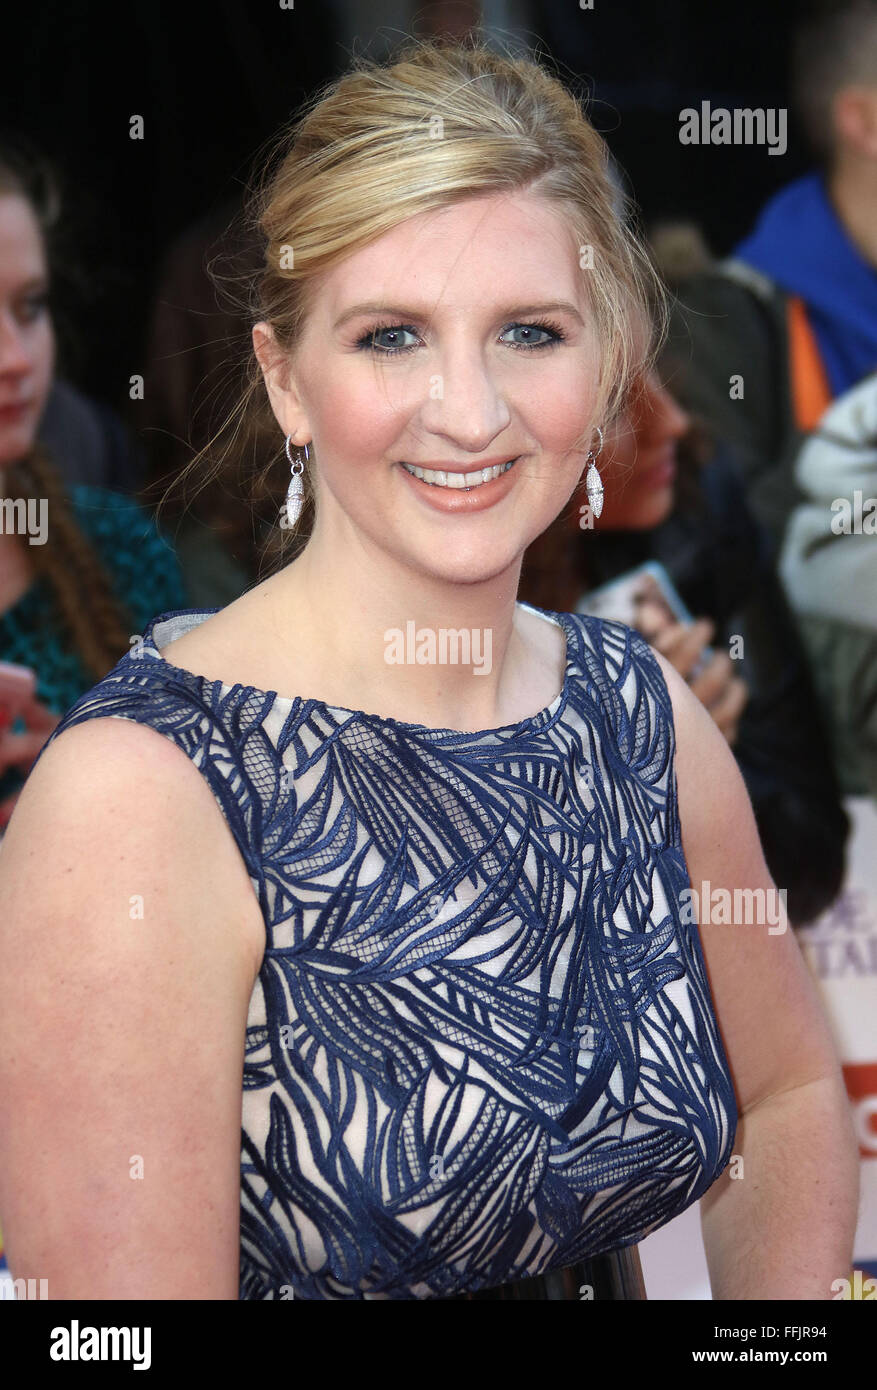 rebecca adlington - photo #19